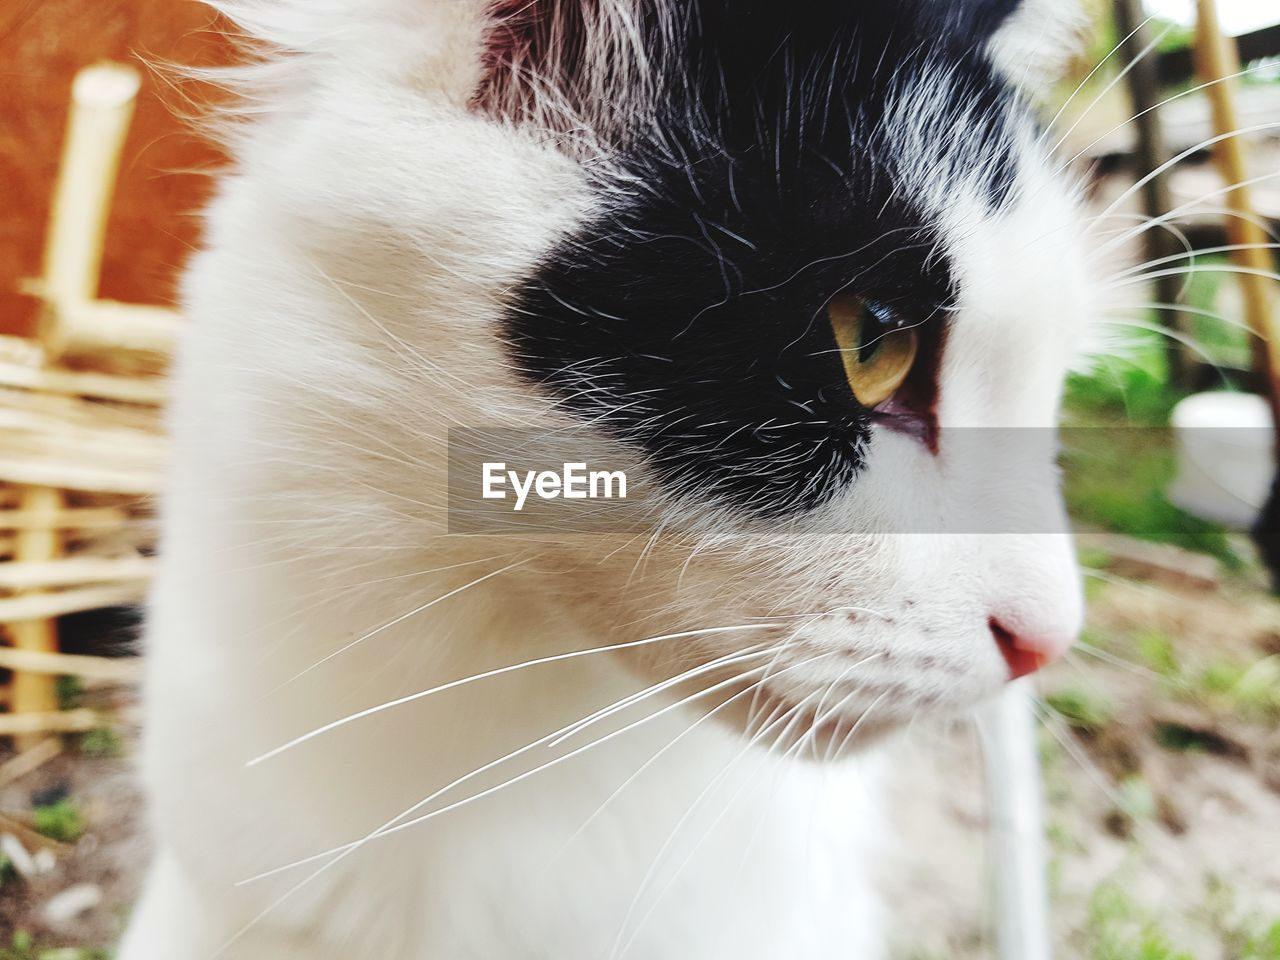 domestic, pets, domestic animals, cat, animal, mammal, animal themes, domestic cat, one animal, feline, vertebrate, close-up, focus on foreground, whisker, looking, white color, no people, looking away, animal body part, animal head, snout, animal eye